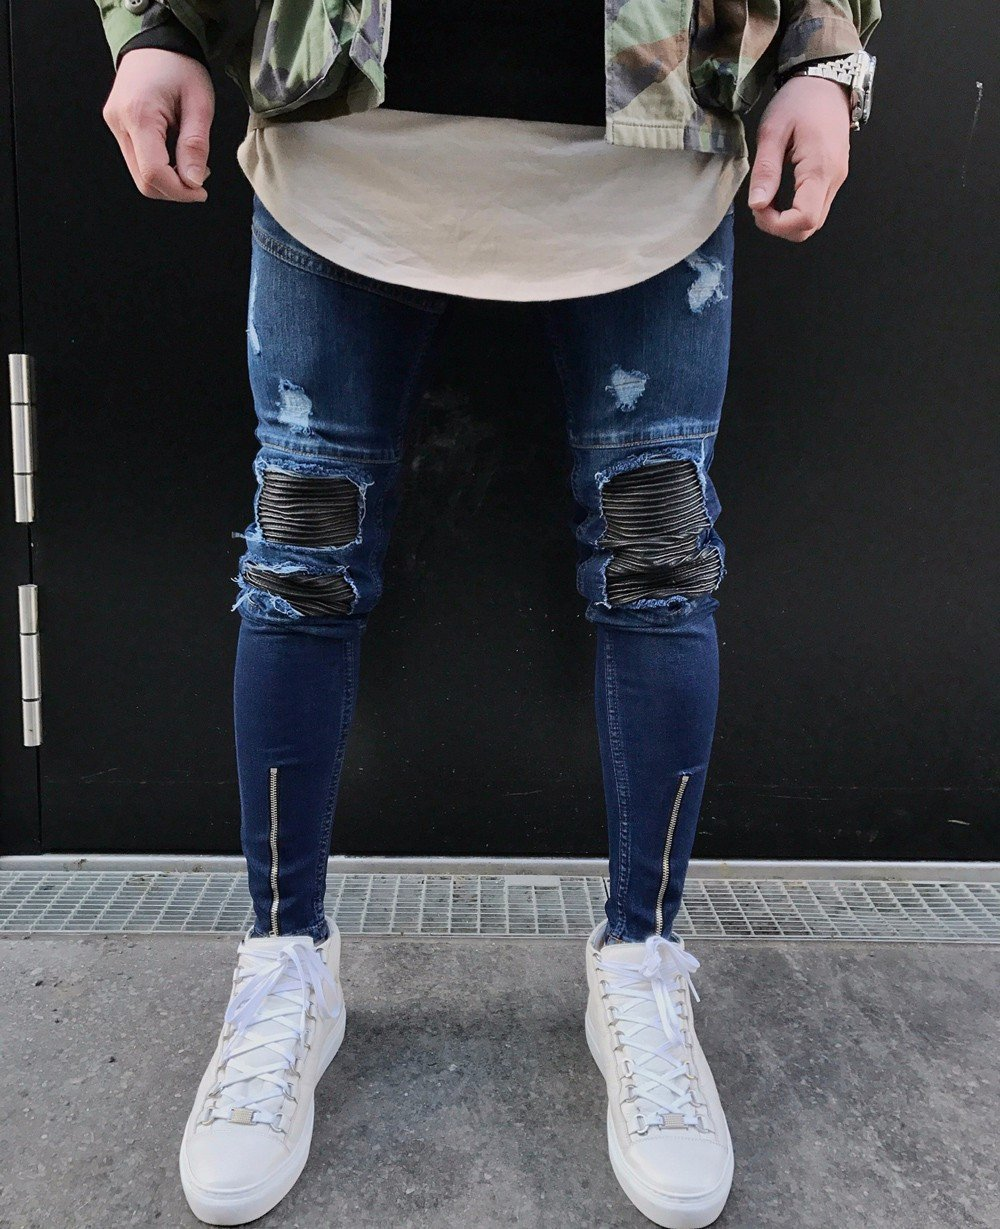 19f986eb492 Men's Ripped Slim Fit Hip-hop Jeans Product information: Season: Spring,  Autumn, Summer, Winter Gender: Men Material: Cotton + Denim Pattern Type:  Solid ...